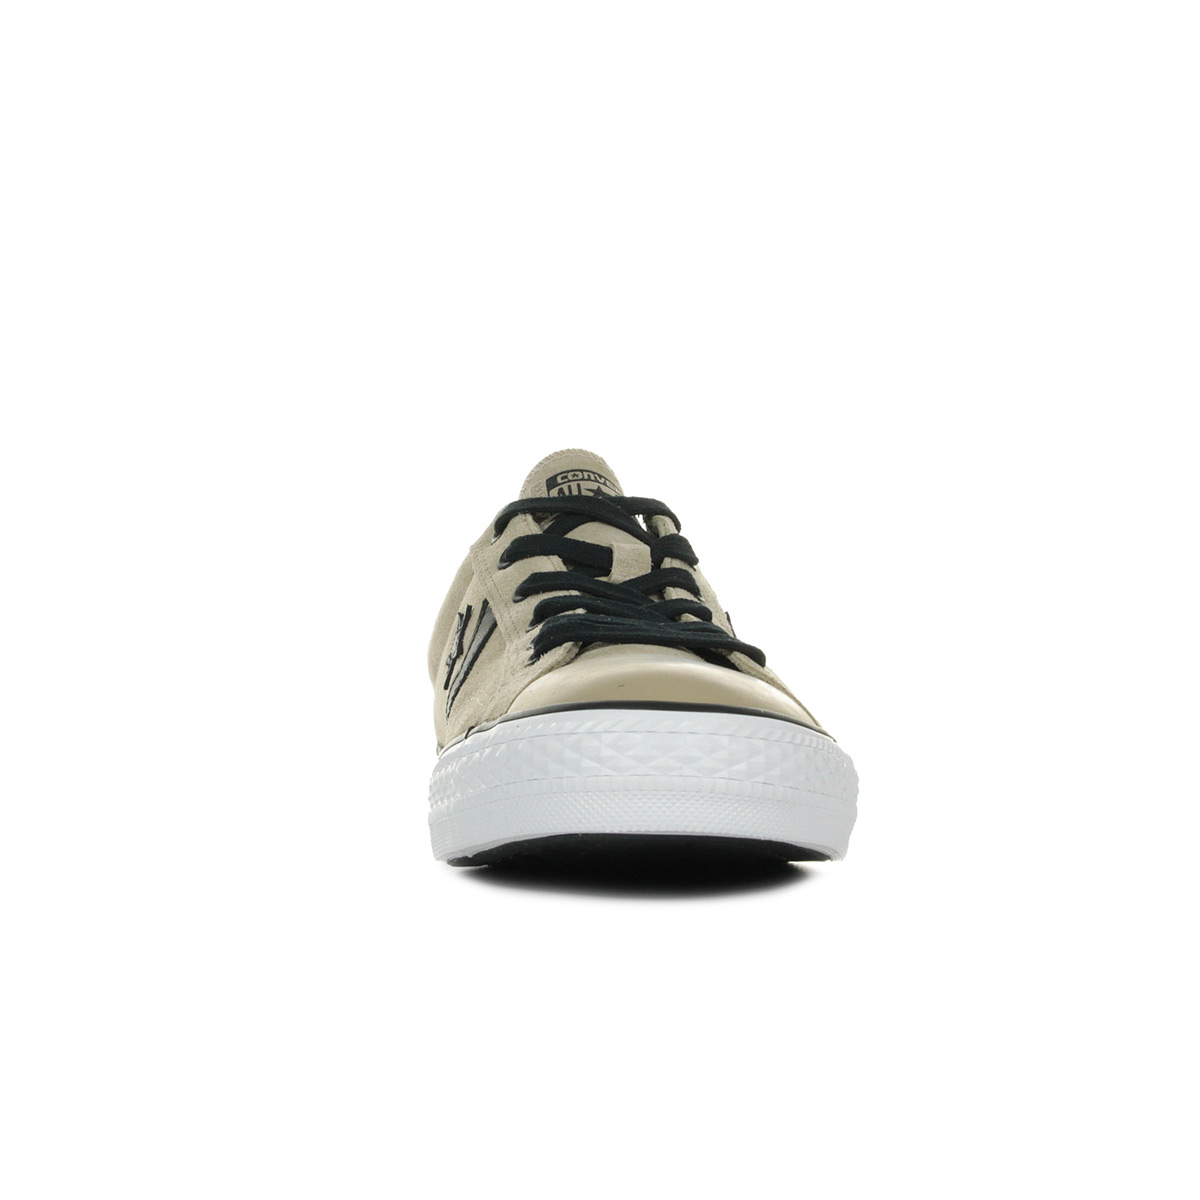 """Chaussures Baskets Converse homme Star Player OX /""""Vintage Camo/"""" taille Beige"""